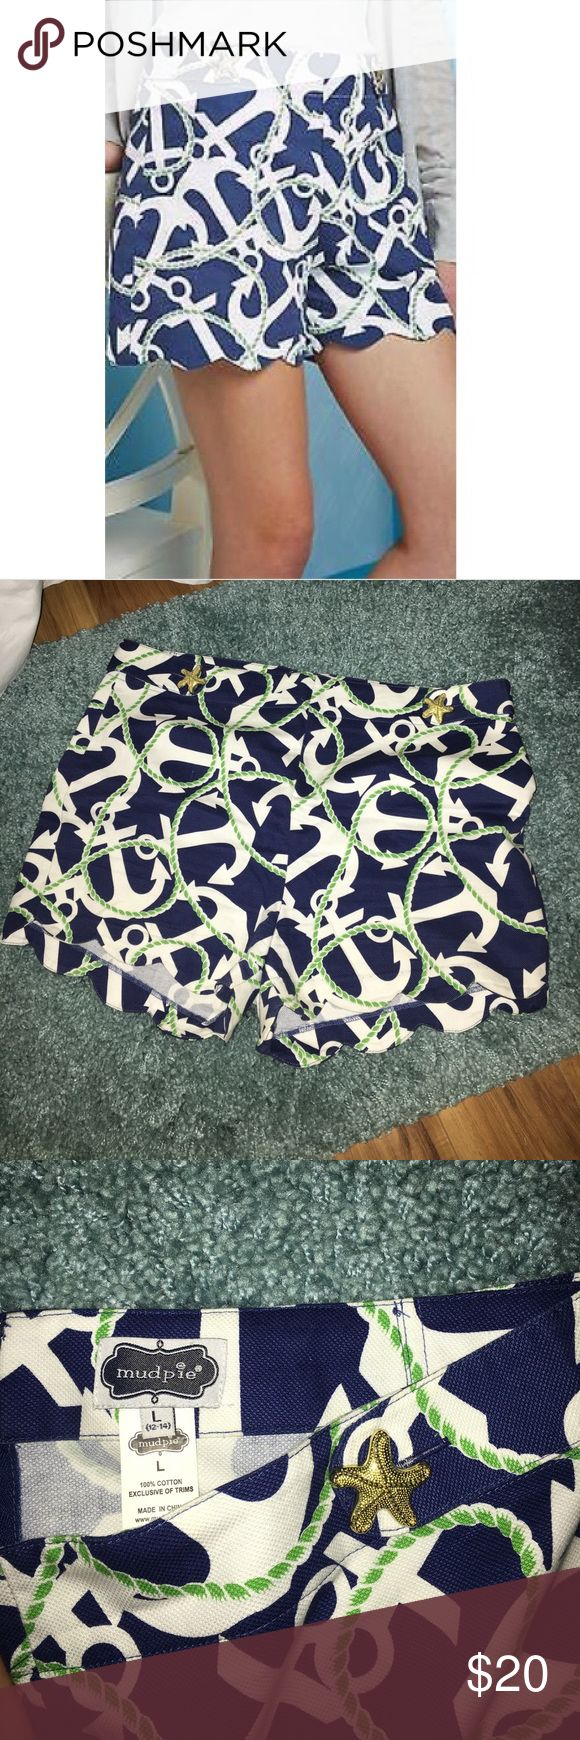 mud pie scalloped anchor shorts super cute preppy anchor shorts by mud pie! great condition, only worn a few times bc they were too big on me. Mud Pie Shorts